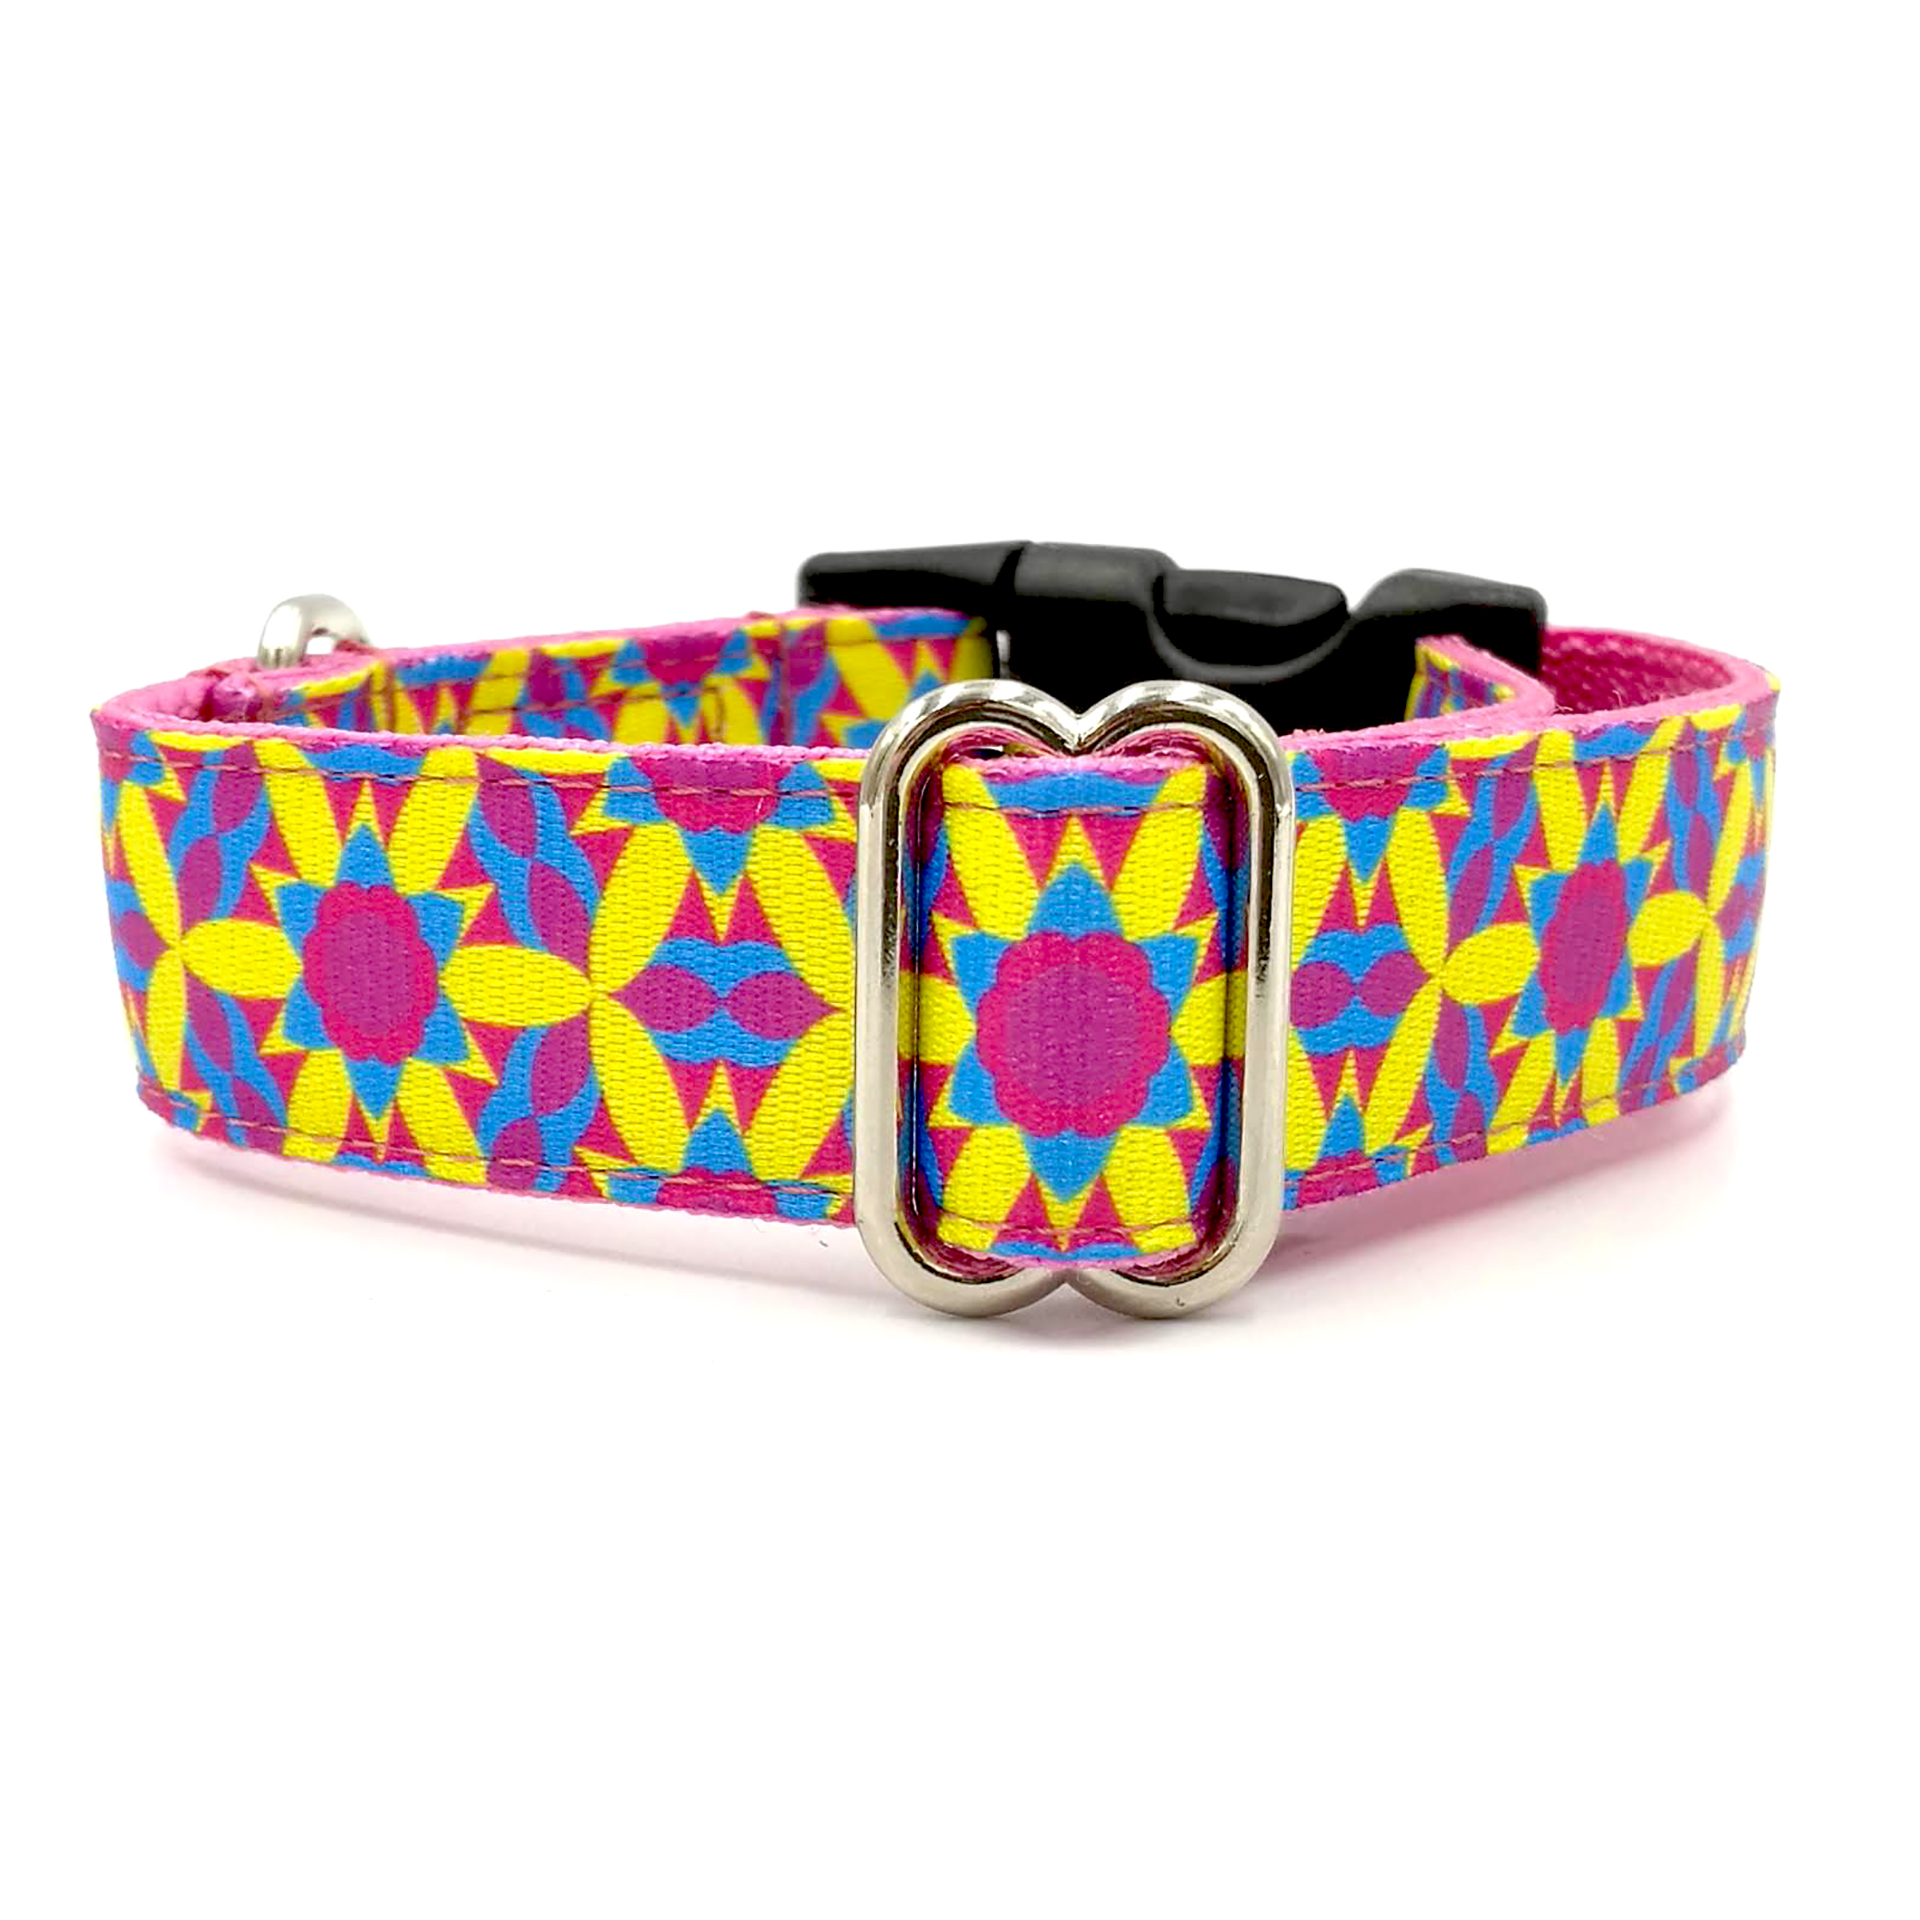 Beauty dog collar